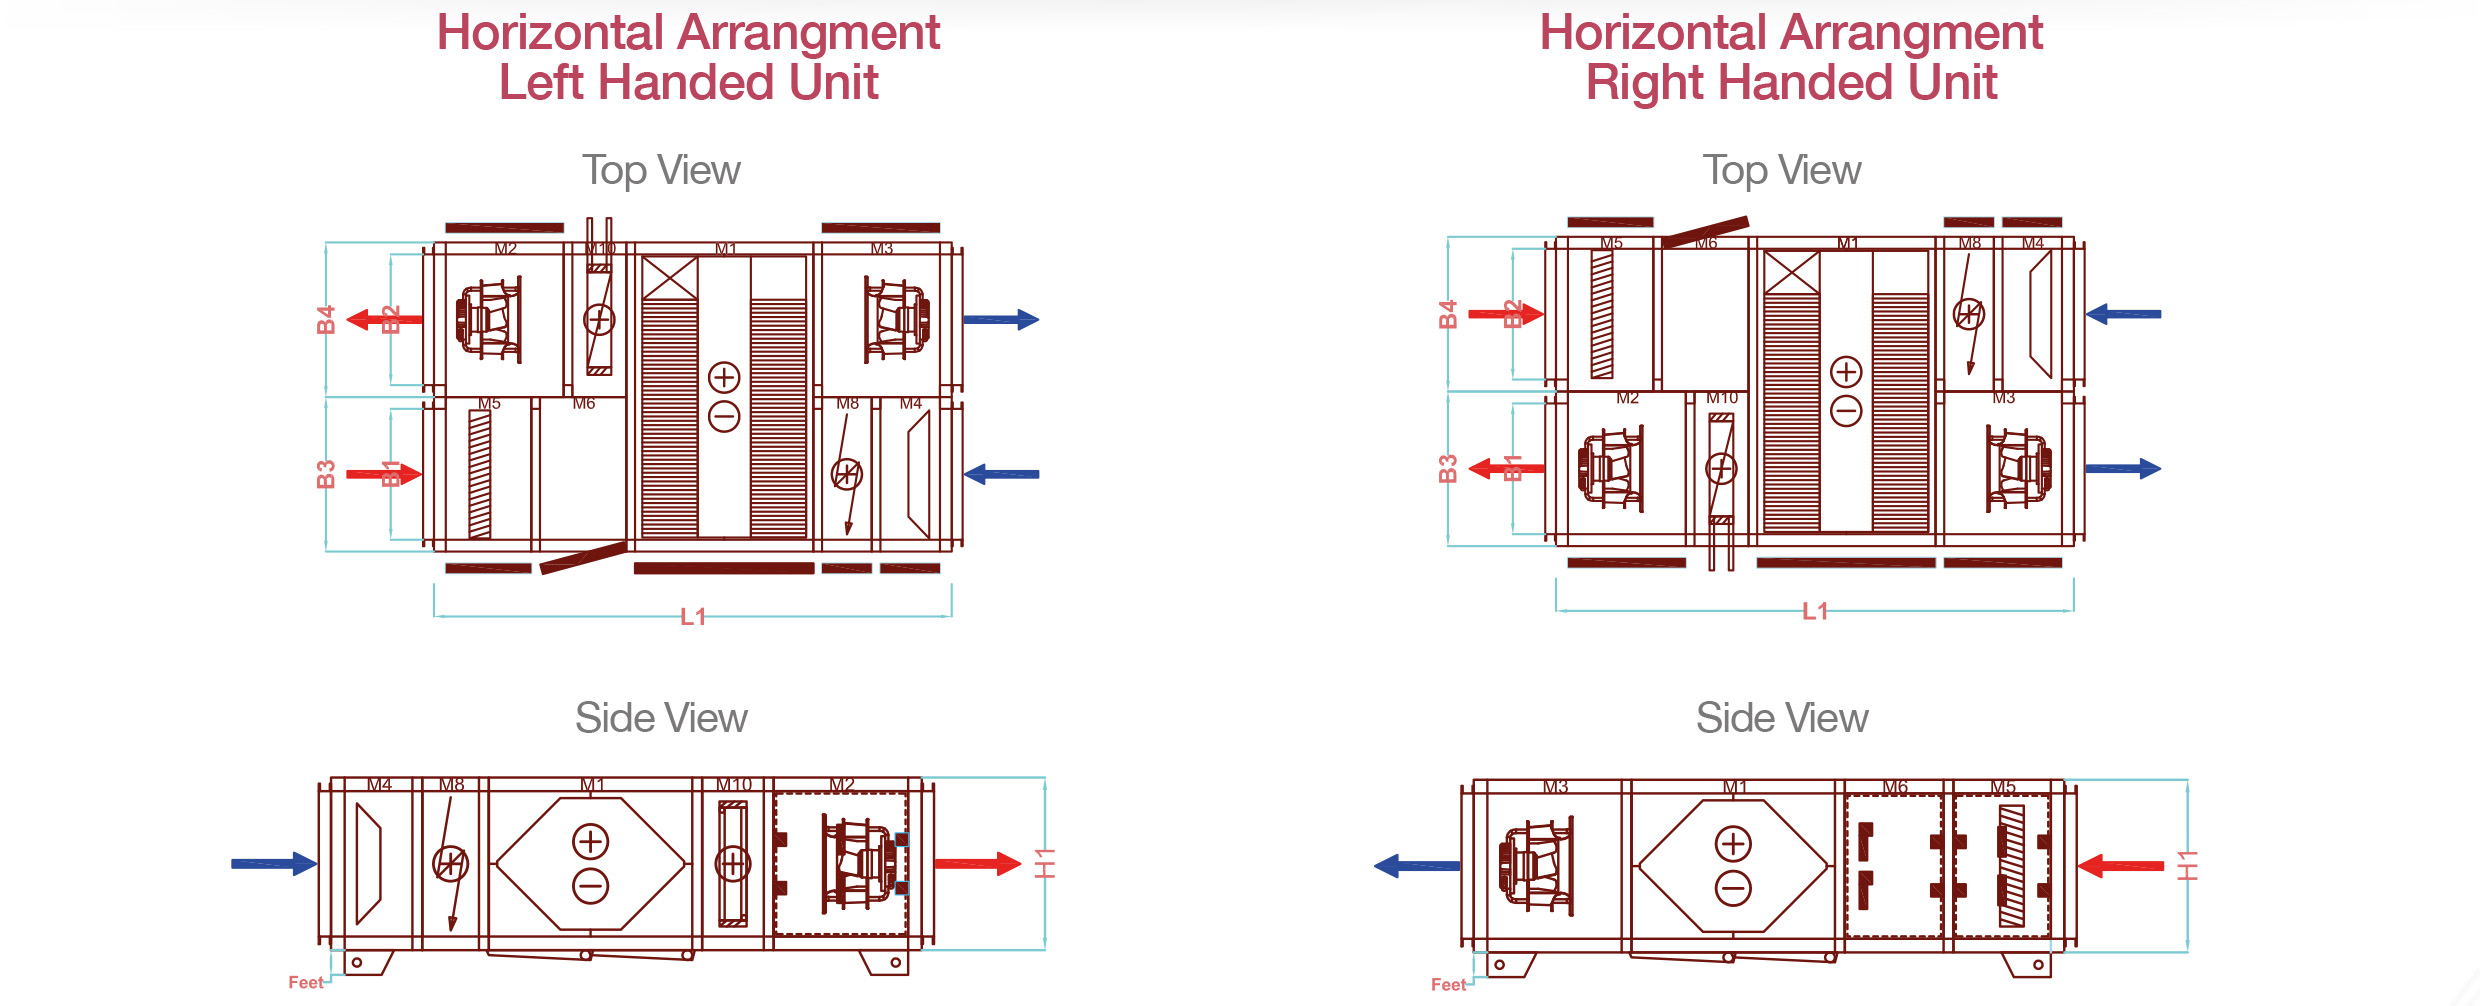 Mergen Horizontal Dimensions